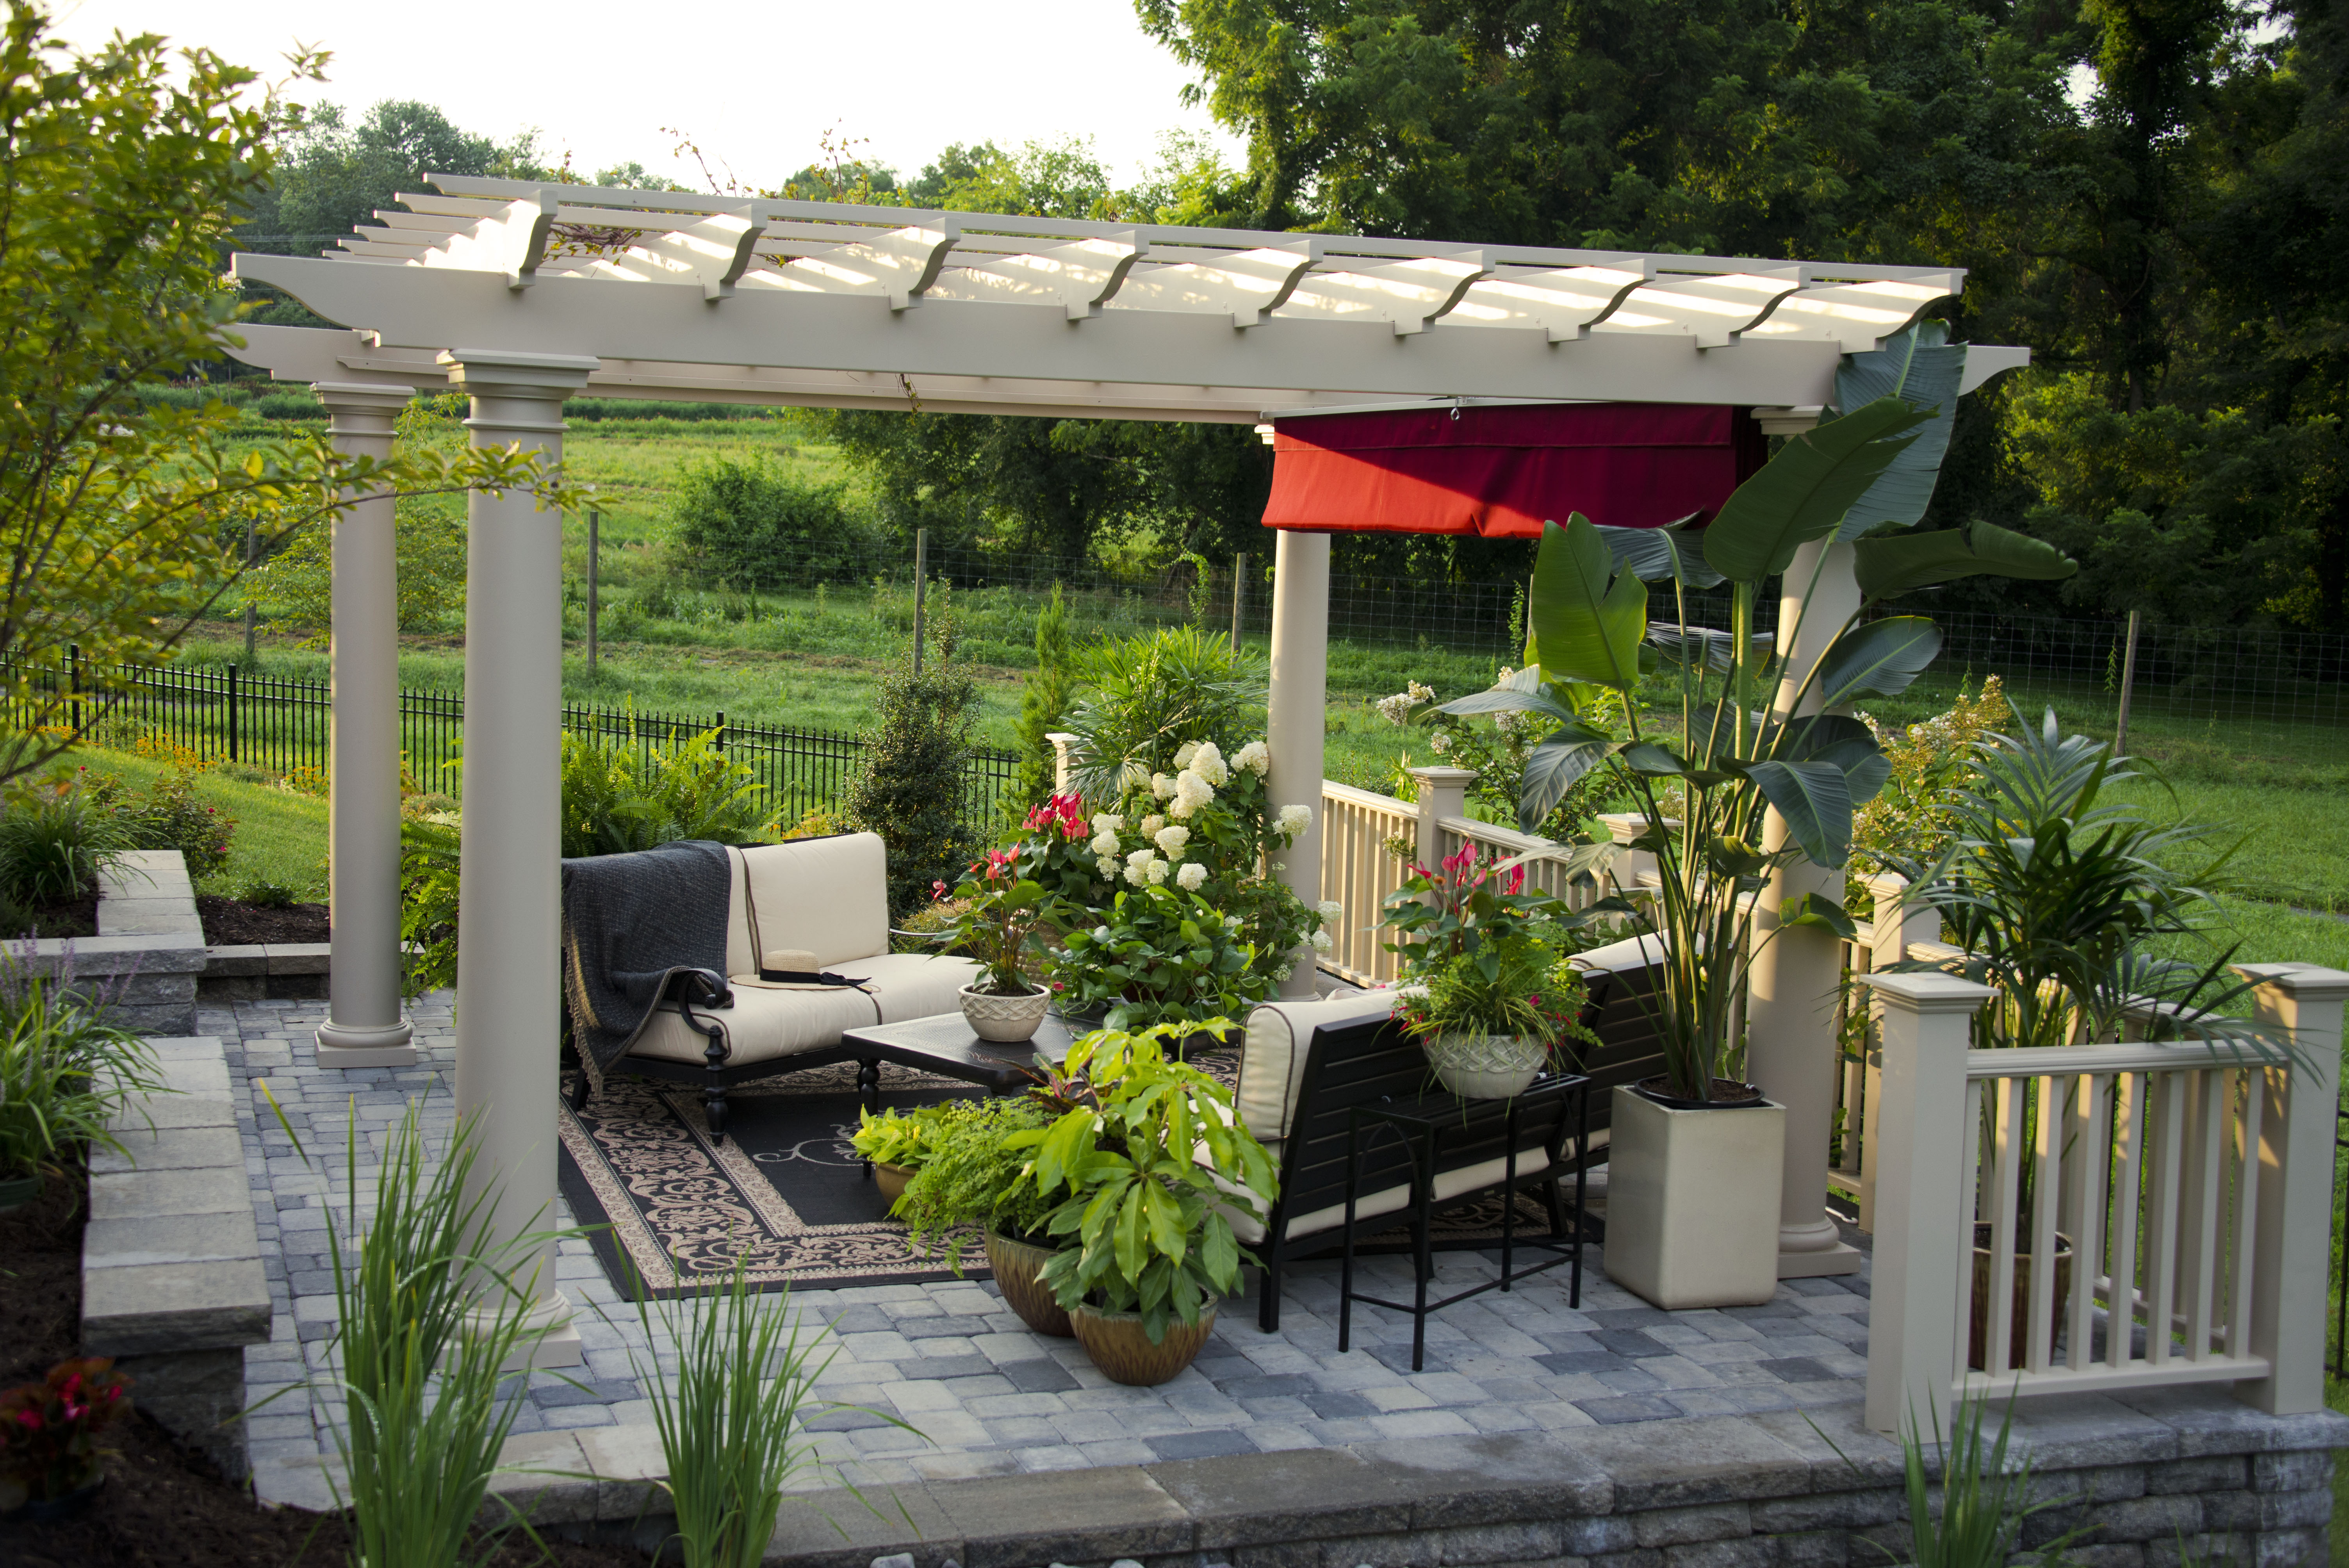 Stone Patio with White Pergola - Merrifield Garden Center on Landscaping And Patios id=58246